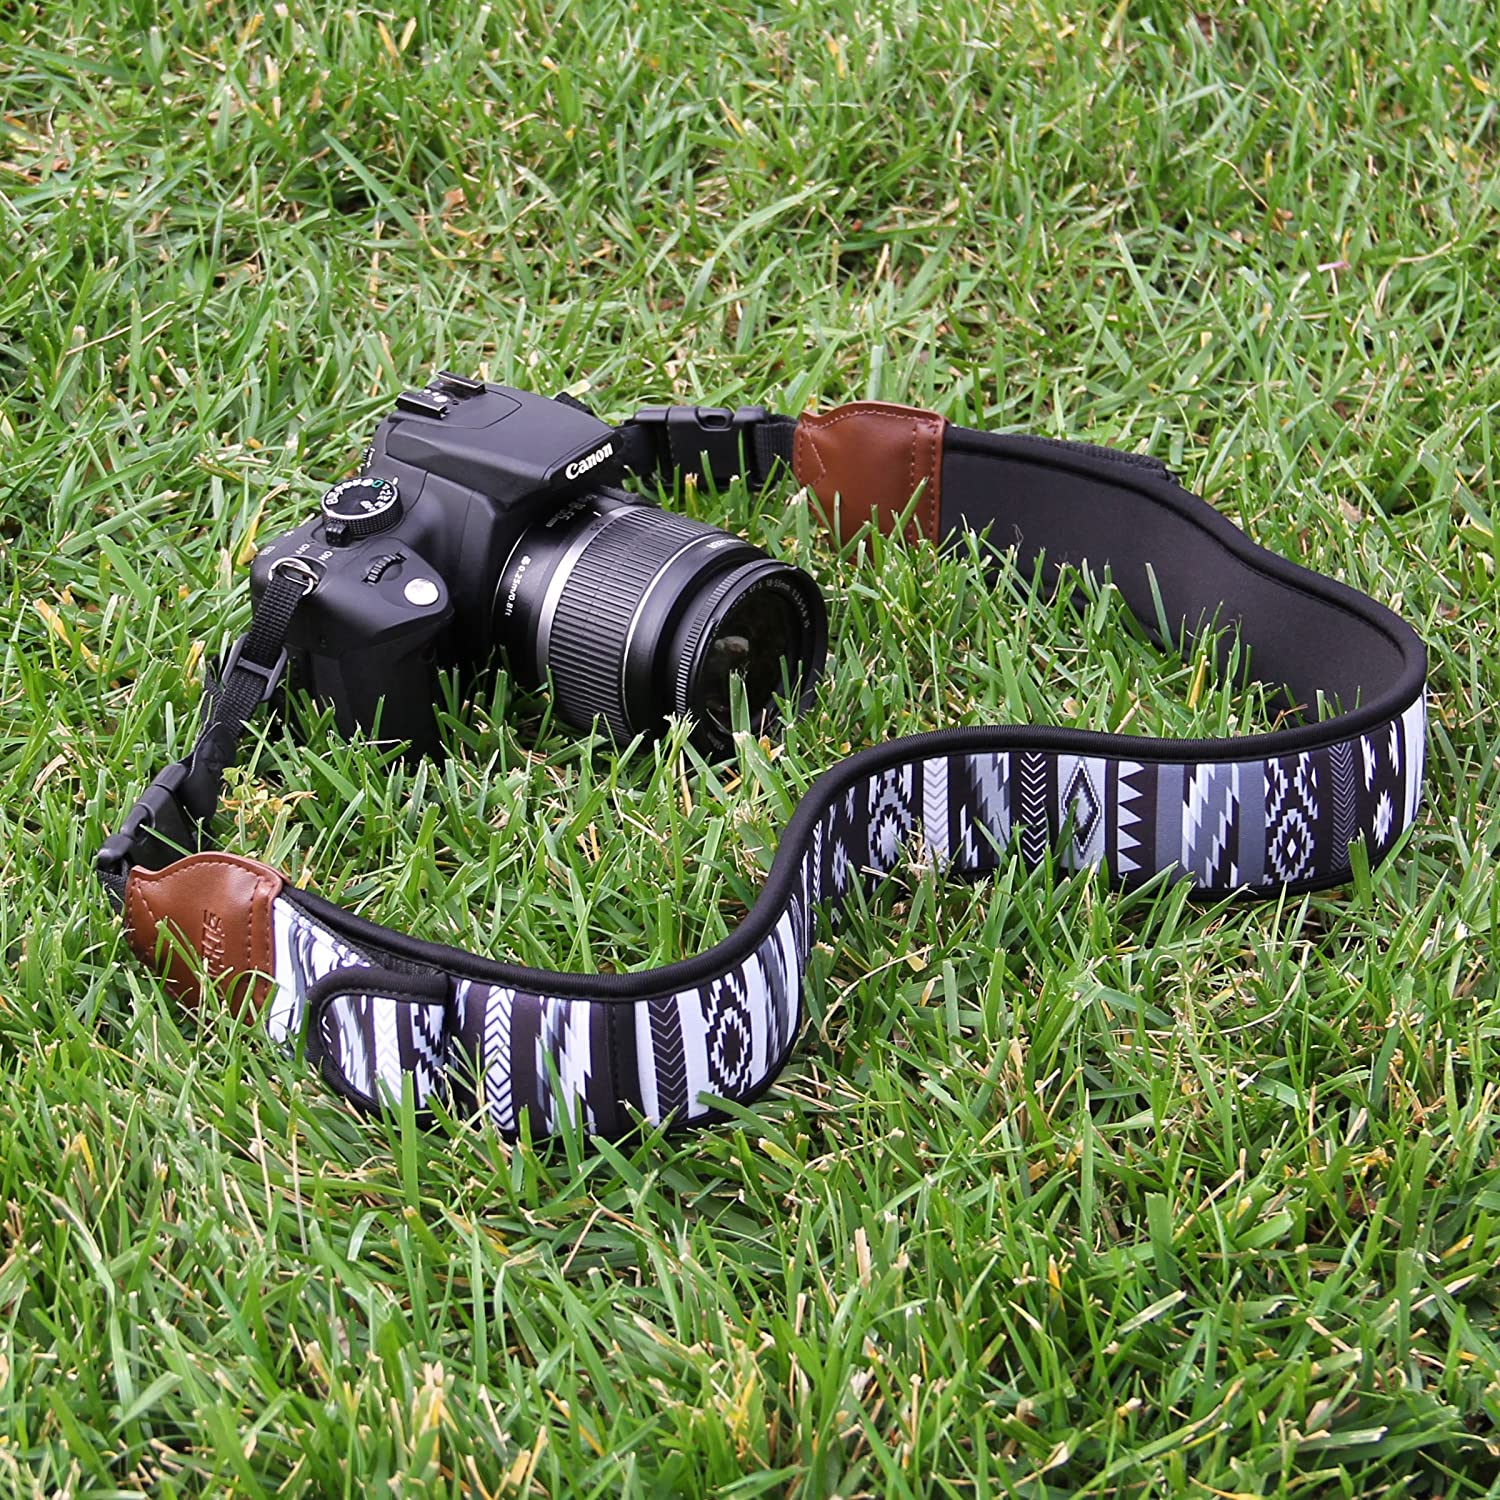 Sony and More DSLR Nikon Fujifilm Cameras Mirrorless USA GEAR TrueSHOT Camera Strap with Colorful Neoprene Pattern Compatible With Canon Accessory Pockets and Quick Release Buckles